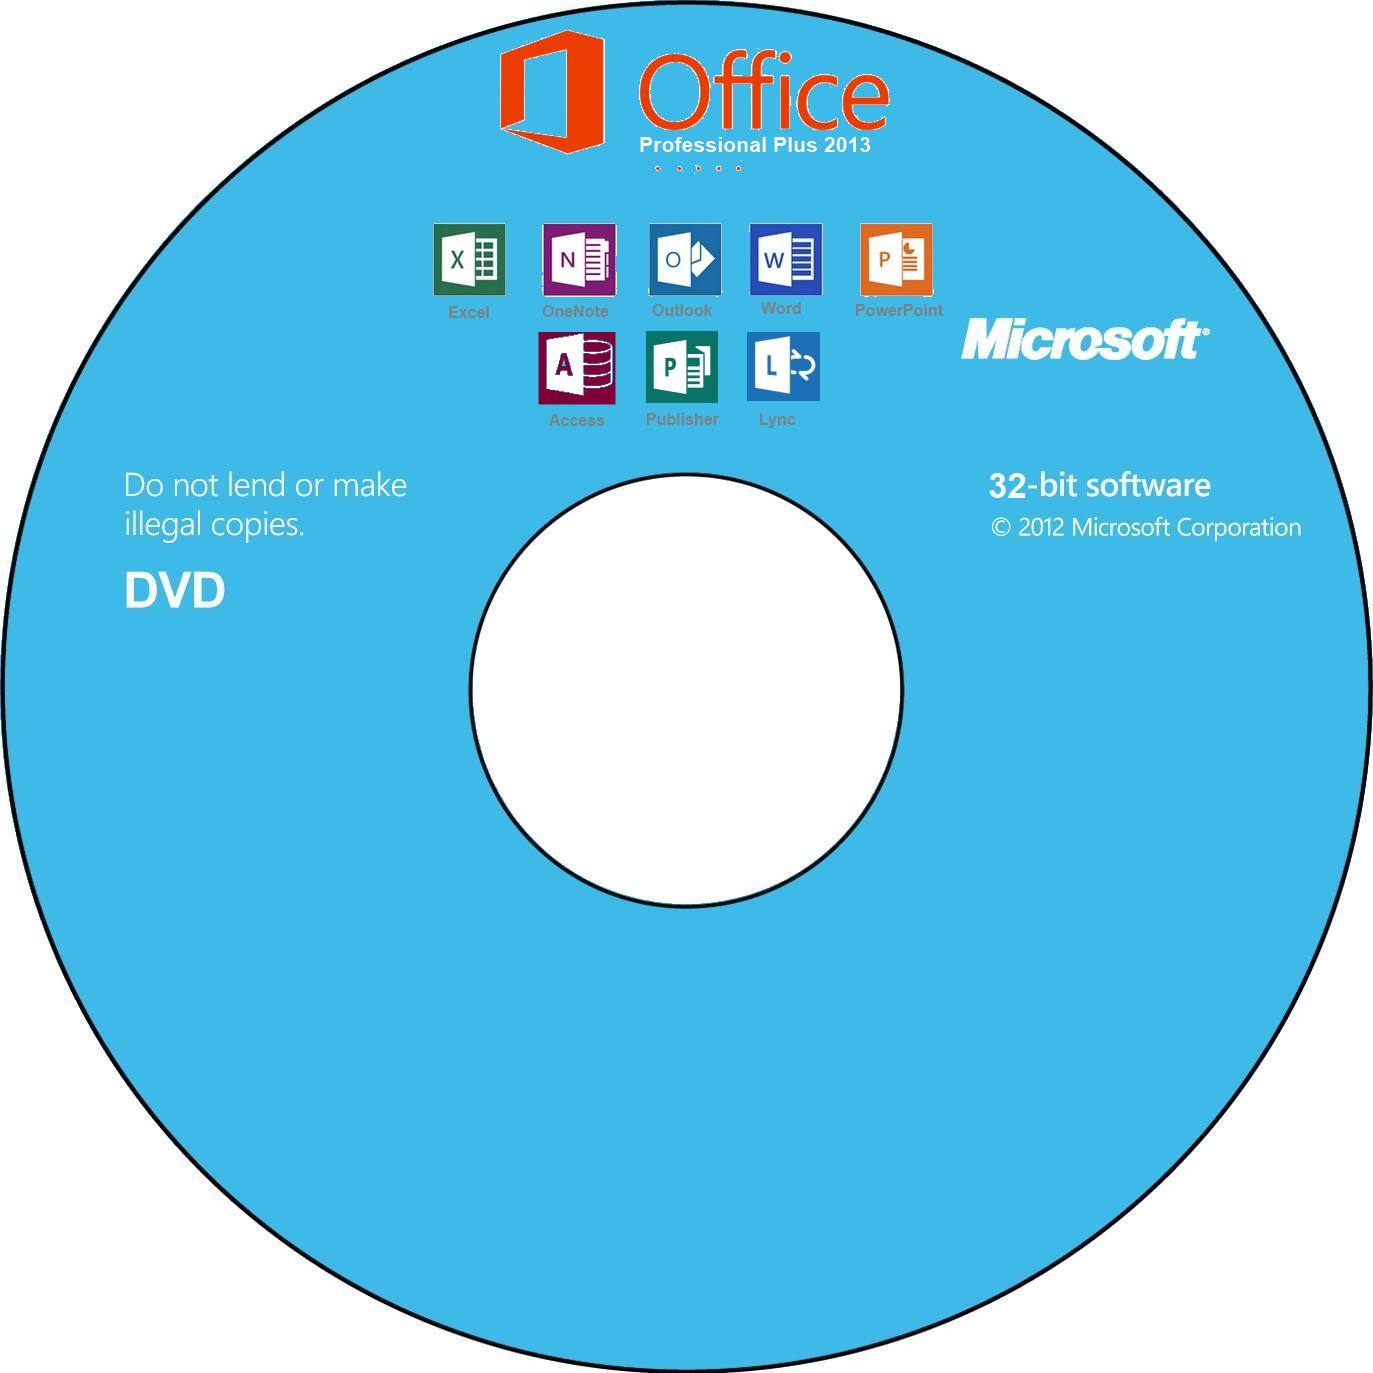 Solved office 2013 icons images cd dvd disk up running technologies tech how to 39 s - Office professional plus 2013 telecharger ...